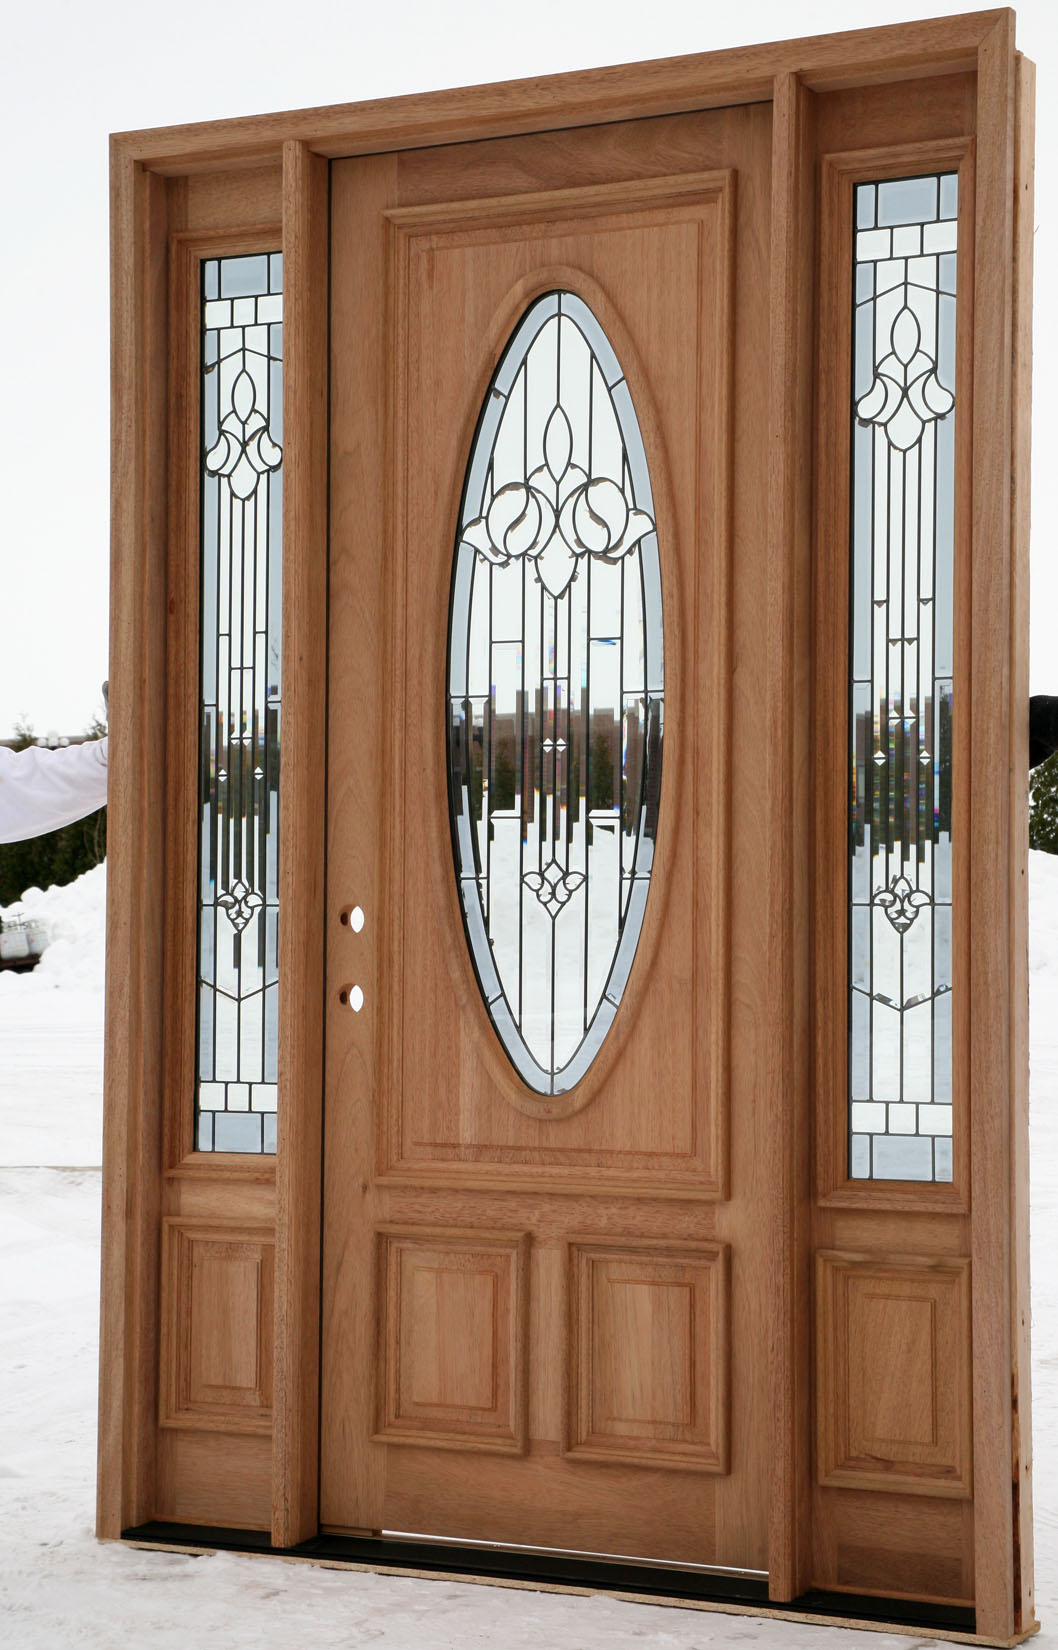 Exterior front doors with sidelights - Exterior Front Doors With Sidelights